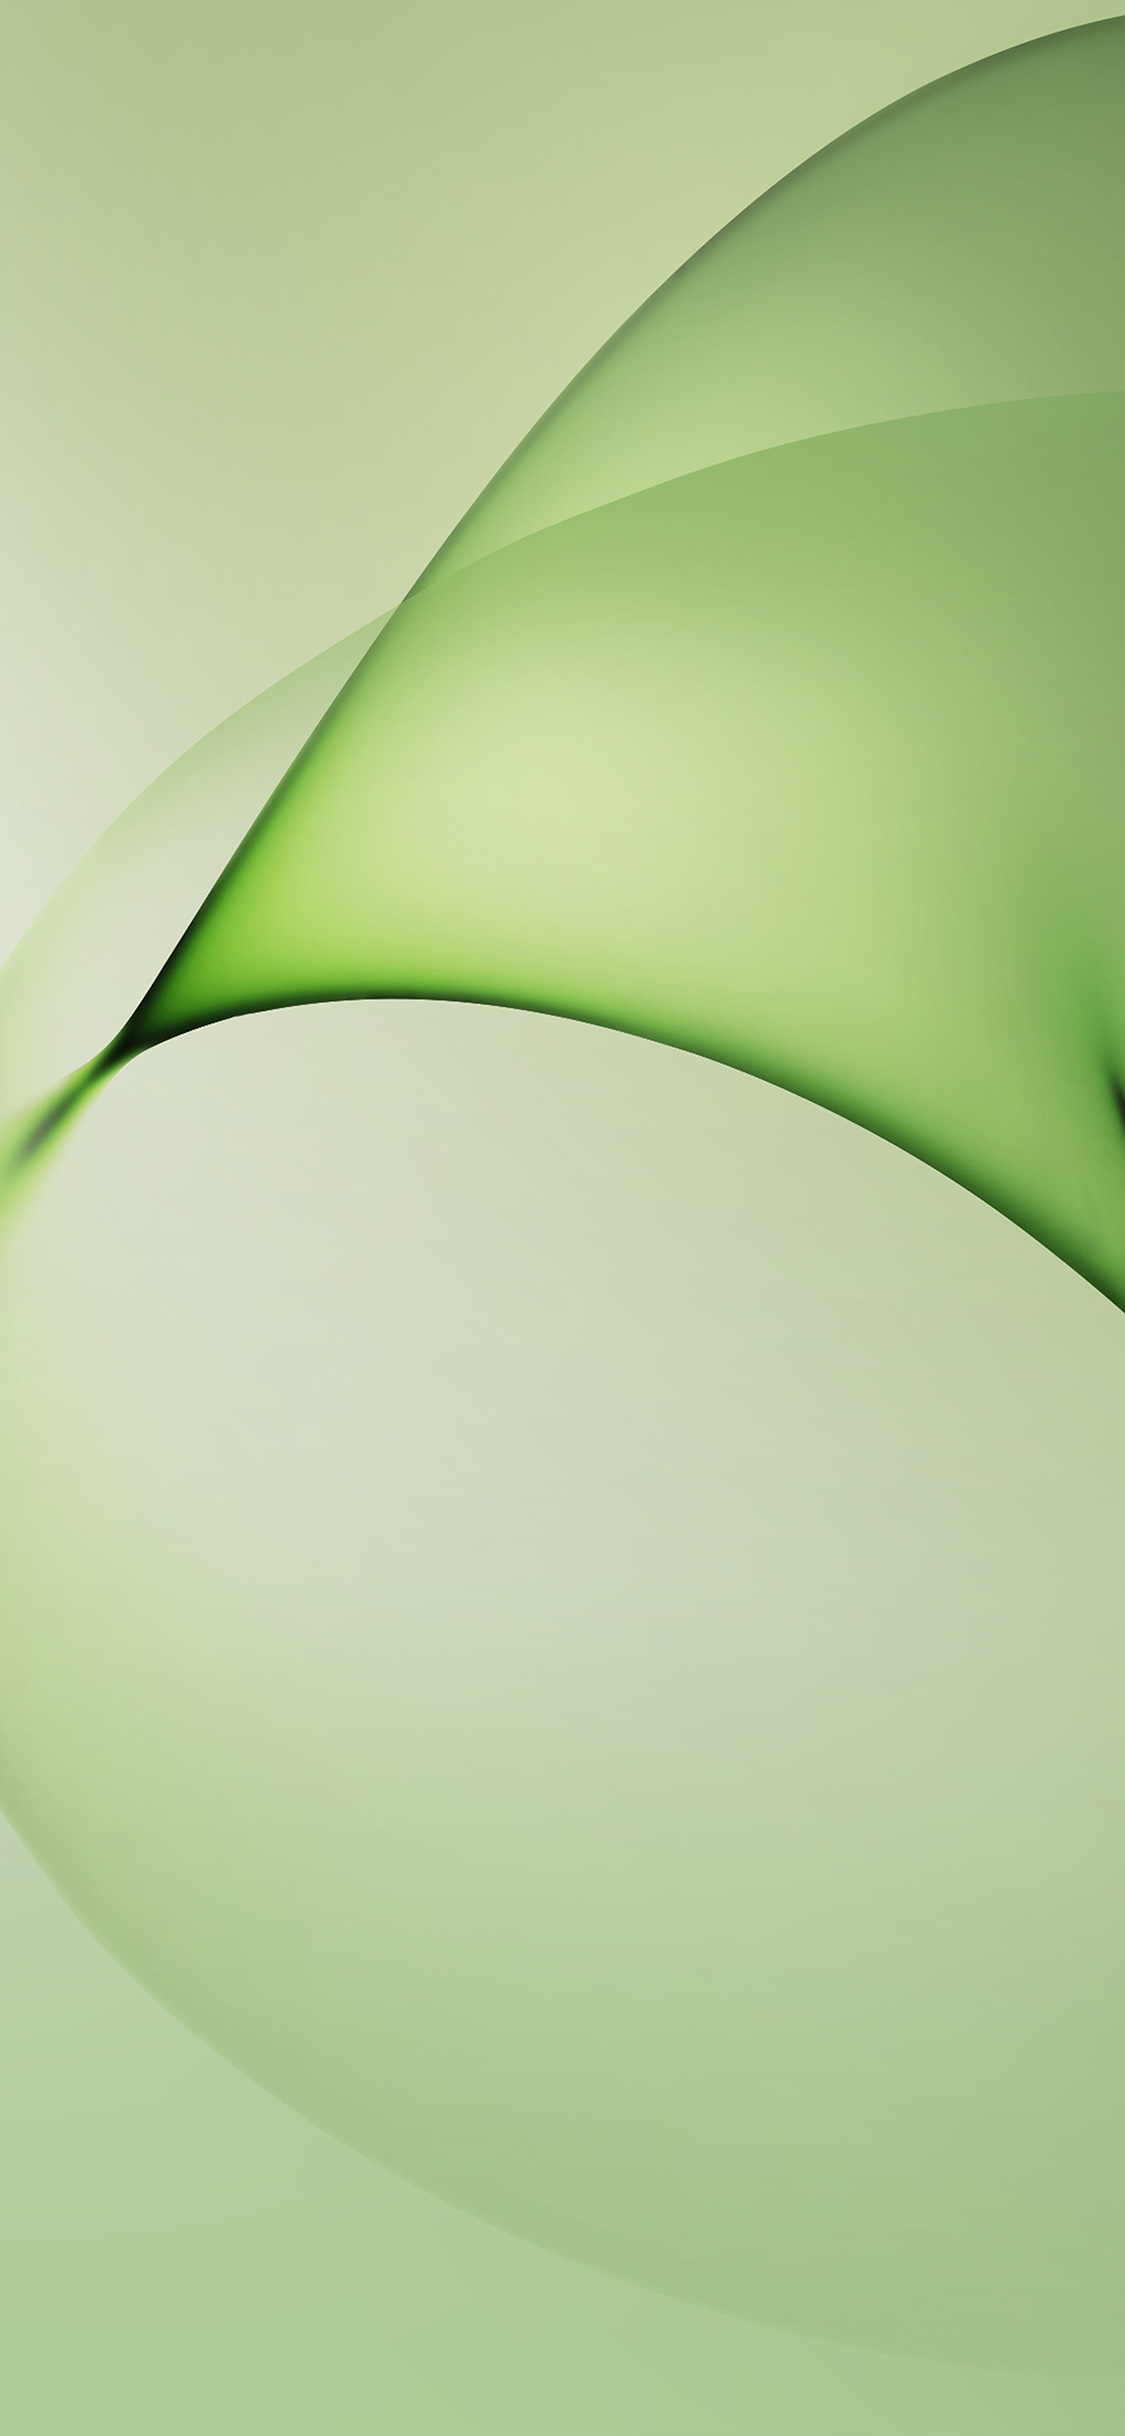 iPhonexpapers.com-Apple-iPhone-wallpaper-vo32-galaxy-7-edge-samsung-green-pattern